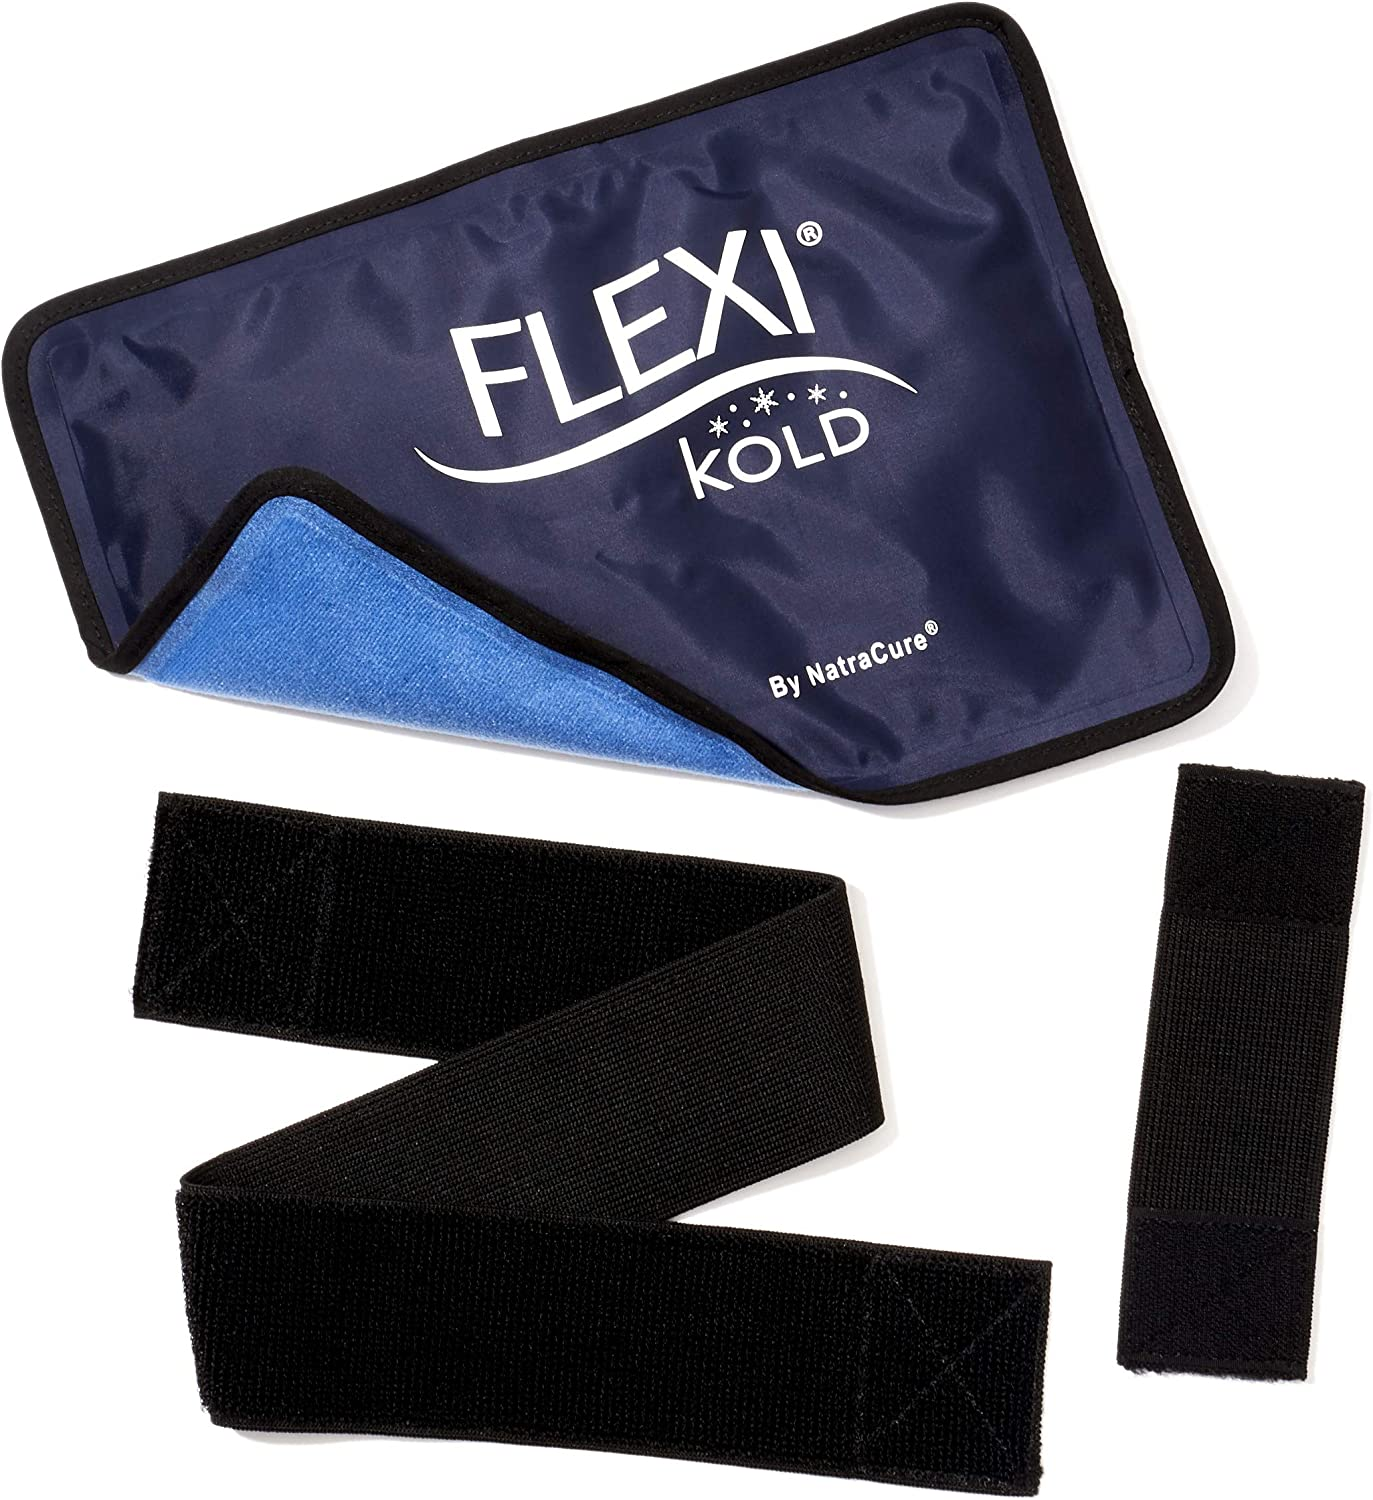 """FlexiKold Gel Ice Pack w/Straps (Half Size: 7.5"""" x 11.5"""") - Reusable Cold Pack Compress (Therapy for Pain and Injuries of Knee, Shoulder, Foot, Back, Ankle, Hip) - 6303-COLD-STRAPPED"""